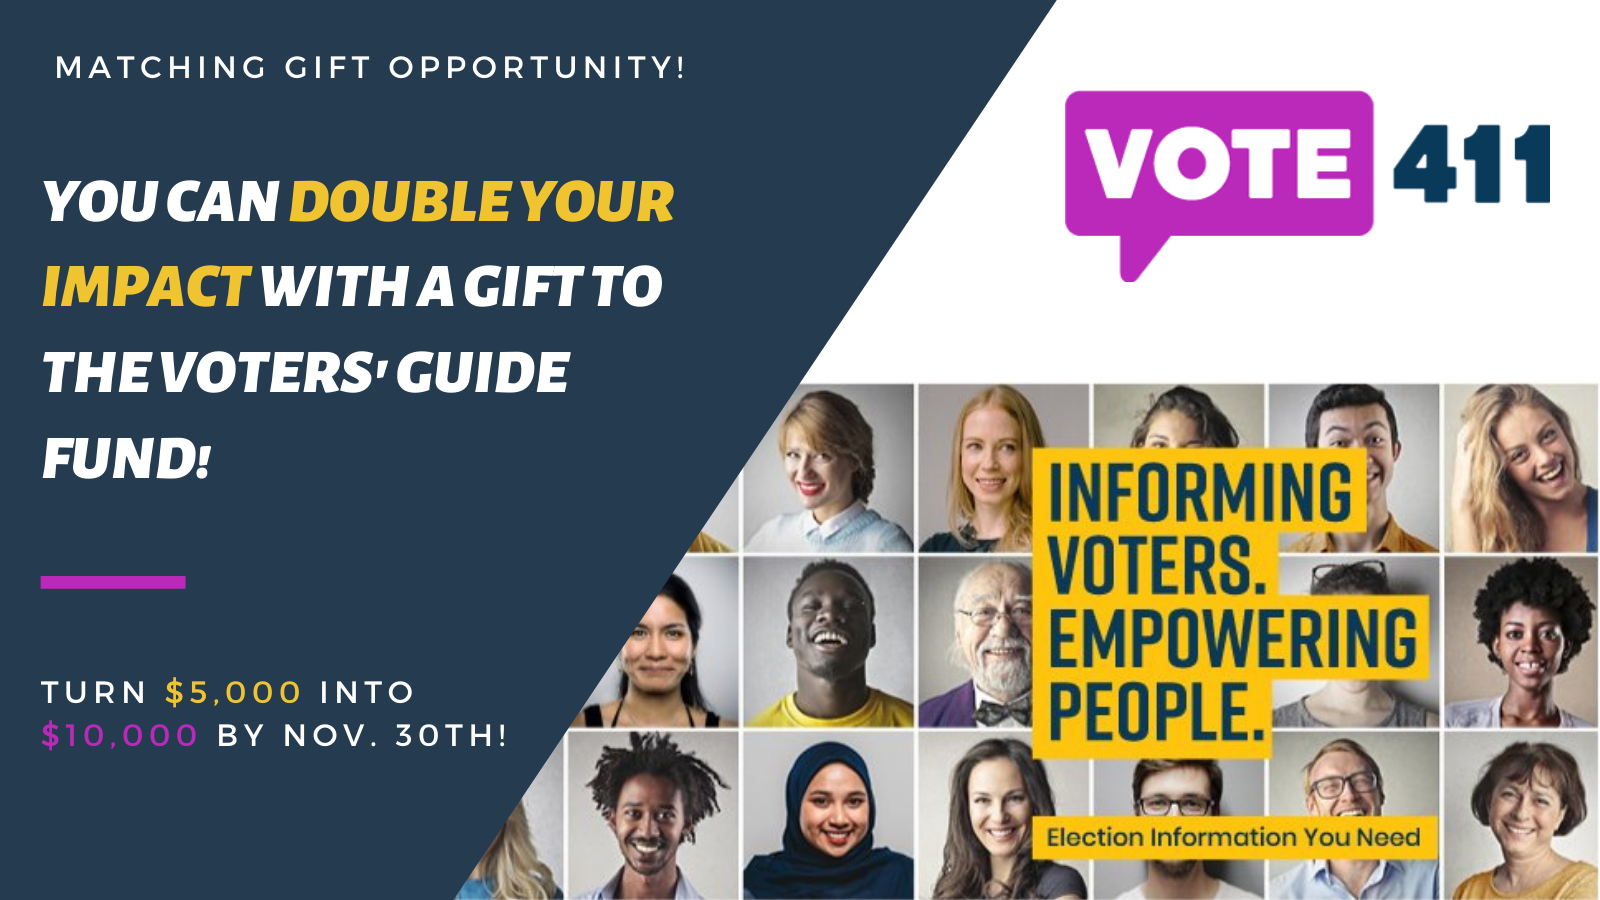 Matching Gift Opportunity - you can DOUBLE YOUR IMPACT with a Gift to the Voters' Guide Fund! - Turn $5,000 into $10,000 by Nov. 30th! - Vote411 Logo - People